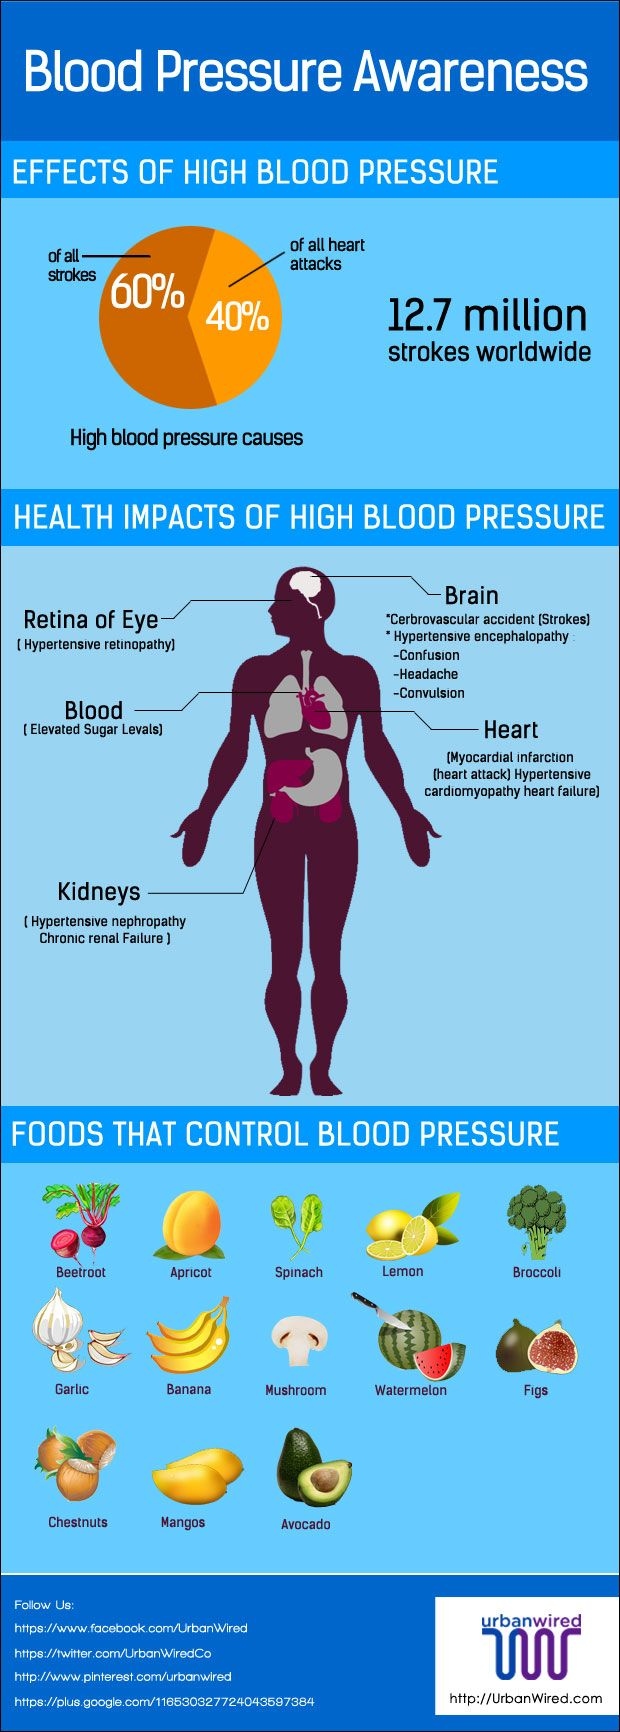 In medical terms, high blood pressure is also called Hypertension. If you are suffering with blood pressure here are home remedies for high blood pressure.